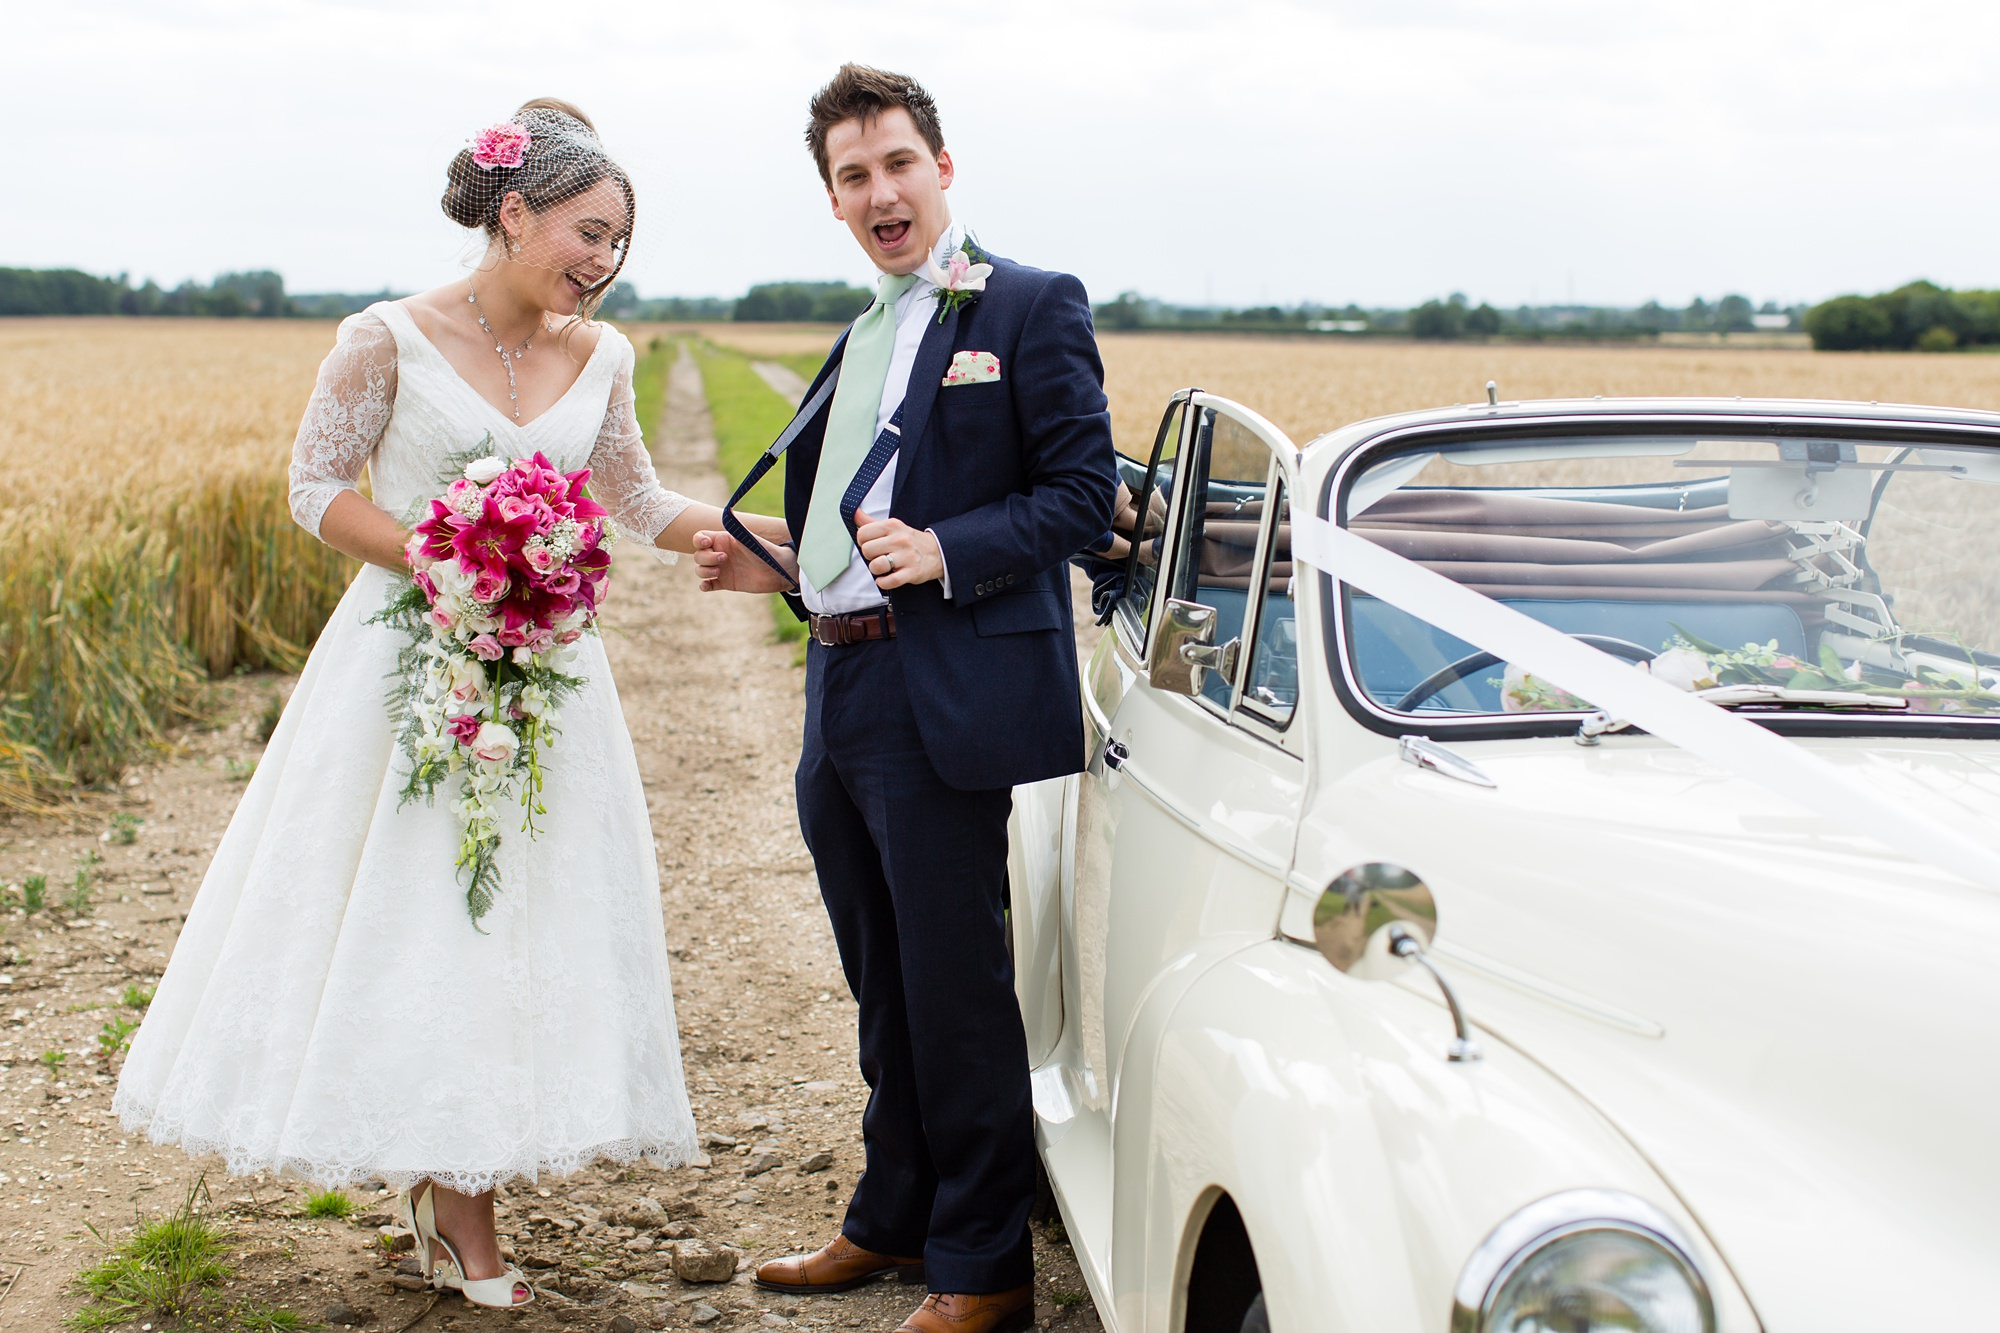 Yorkshire Wedding Photography Barn Venues bride and groom pose outside of vintage VW beetle